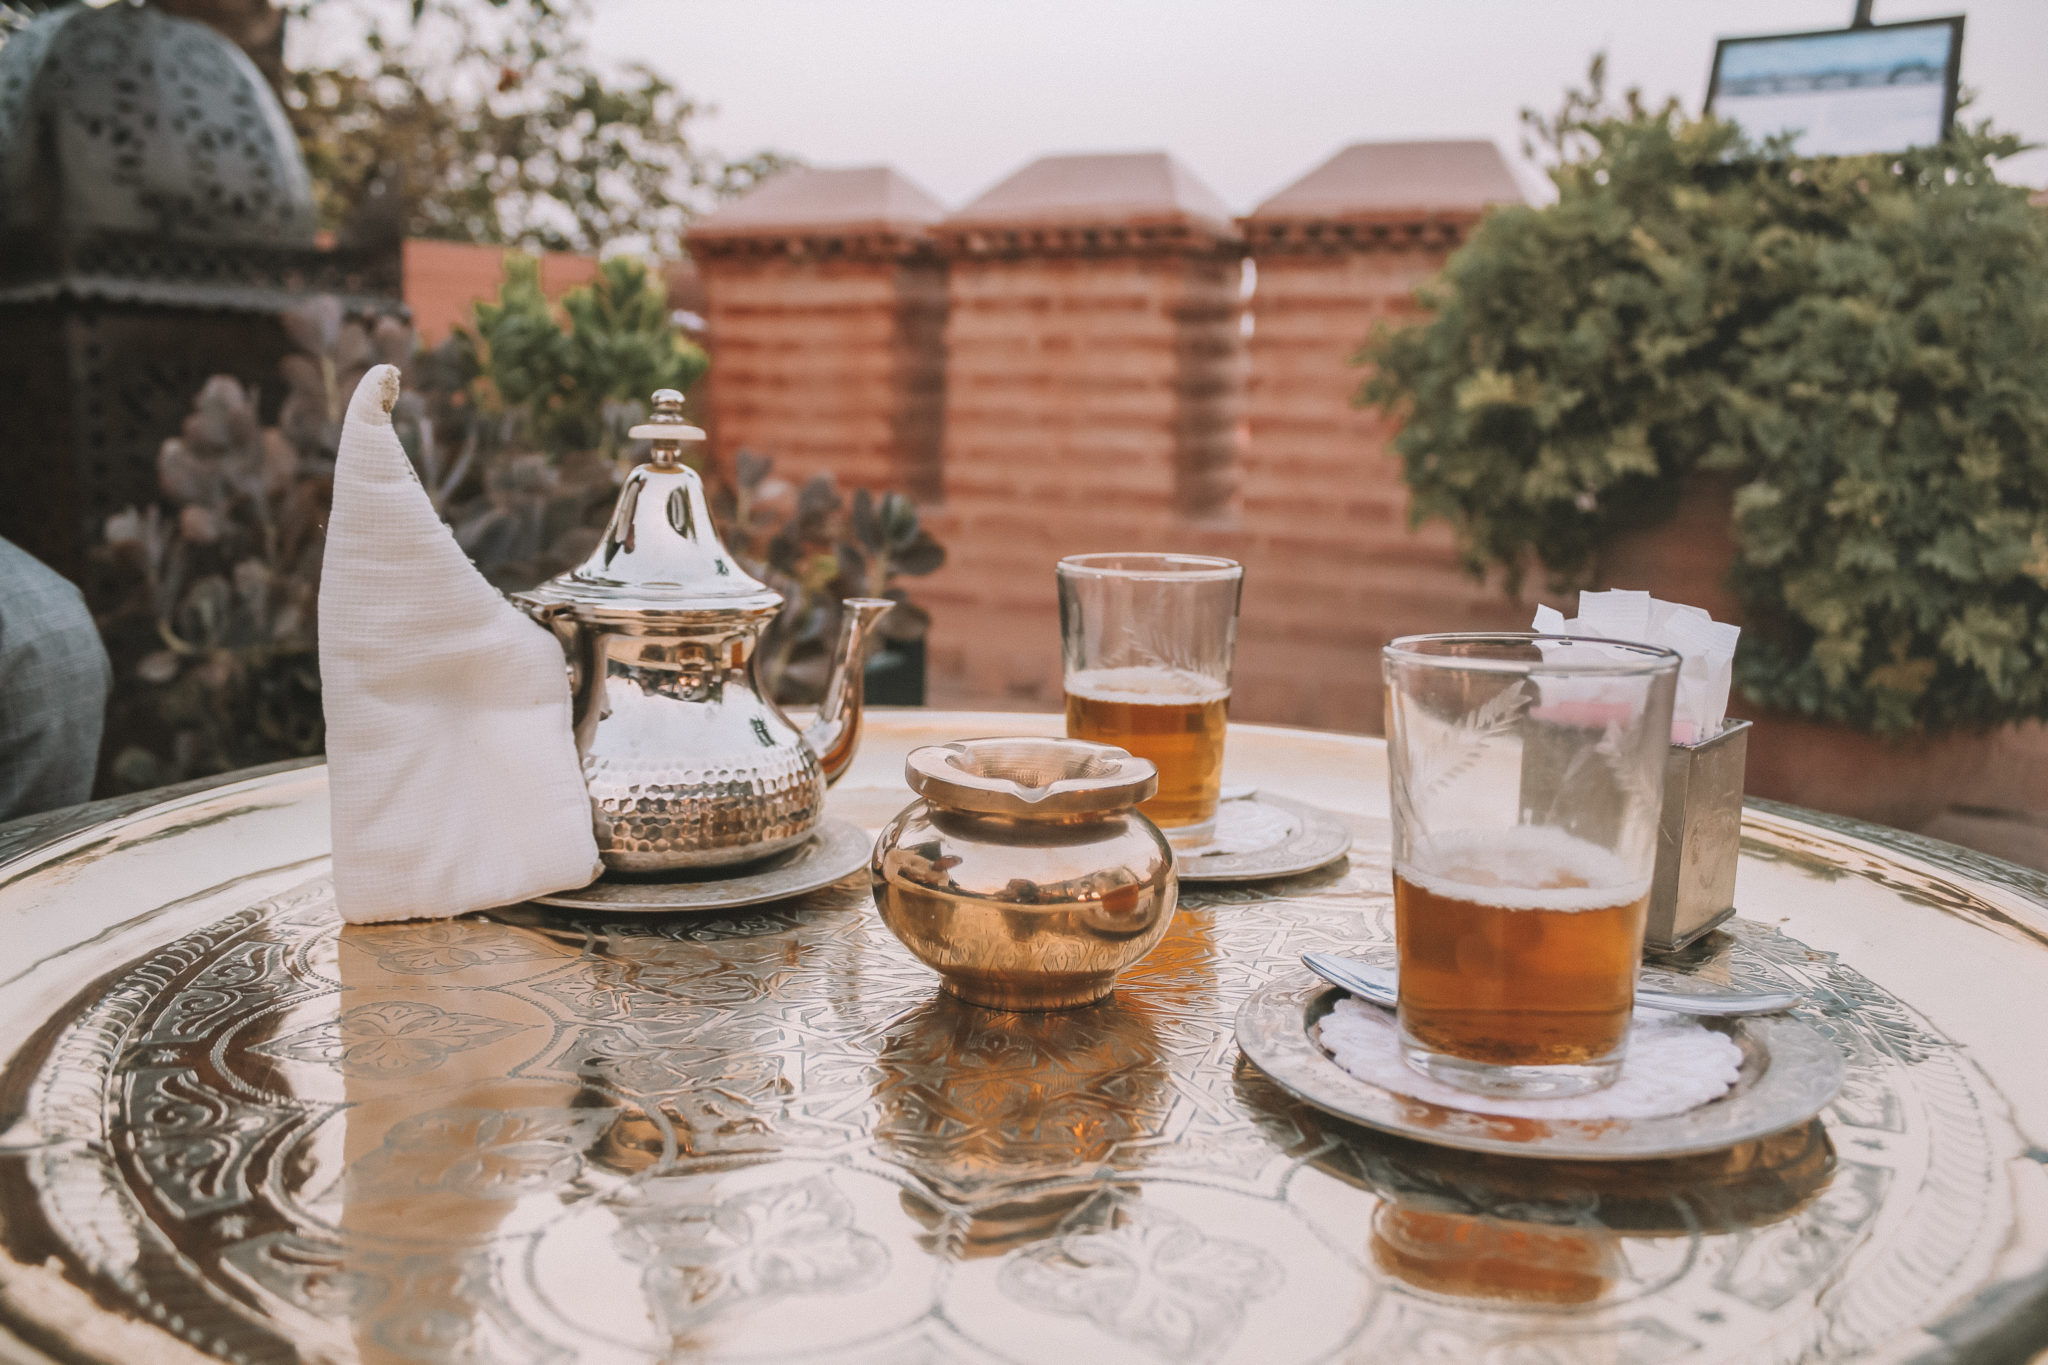 Marrakech Morocco | WORLD OF WANDERLUST